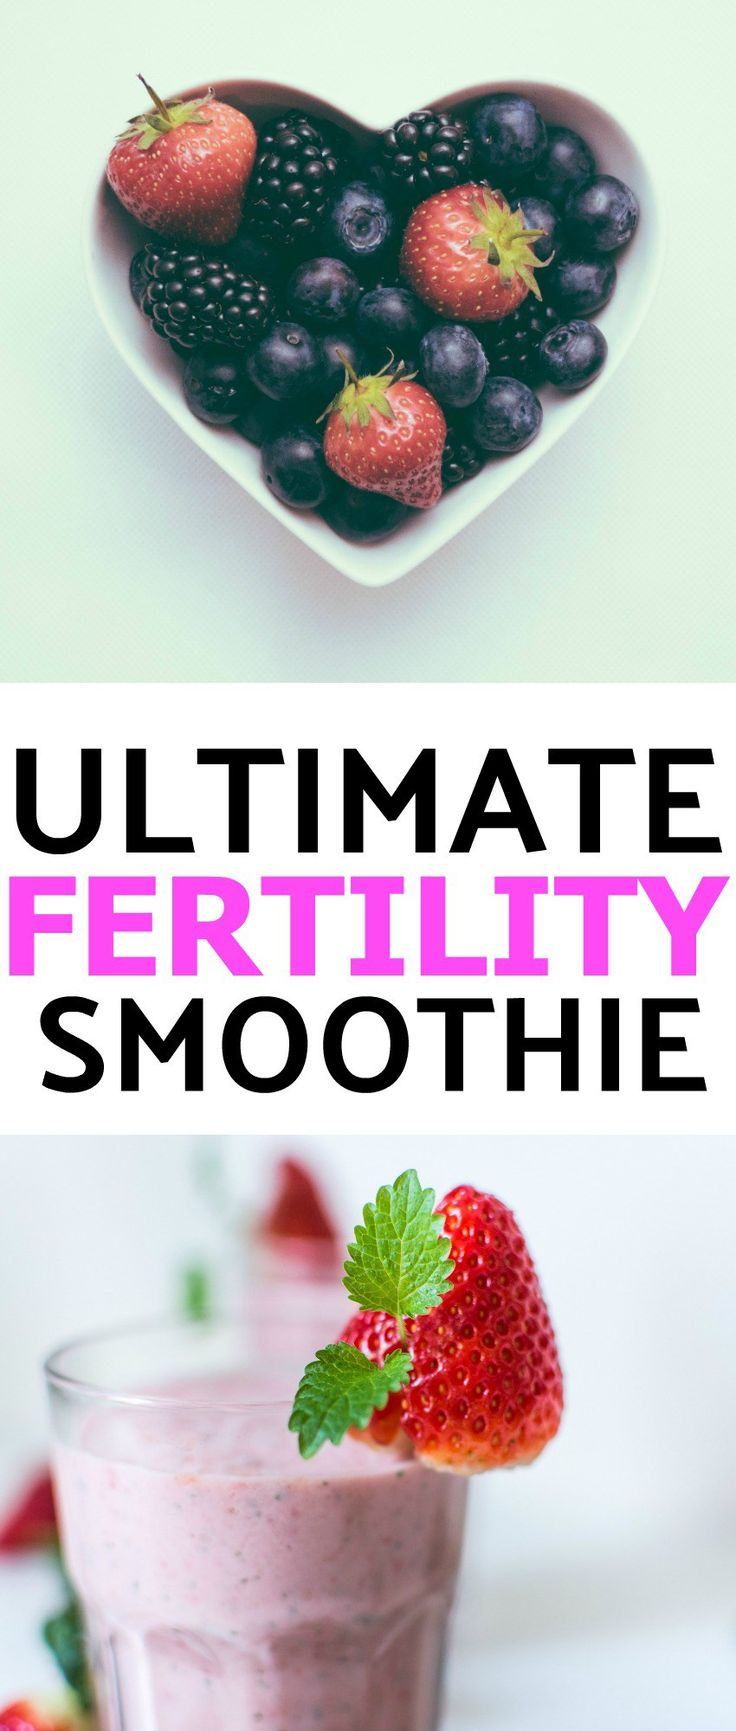 Boost your chances of conceiving with this nutrient dense fertility smoothie! Packed with fertility superfoods, this smoothie will help you get pregnant.